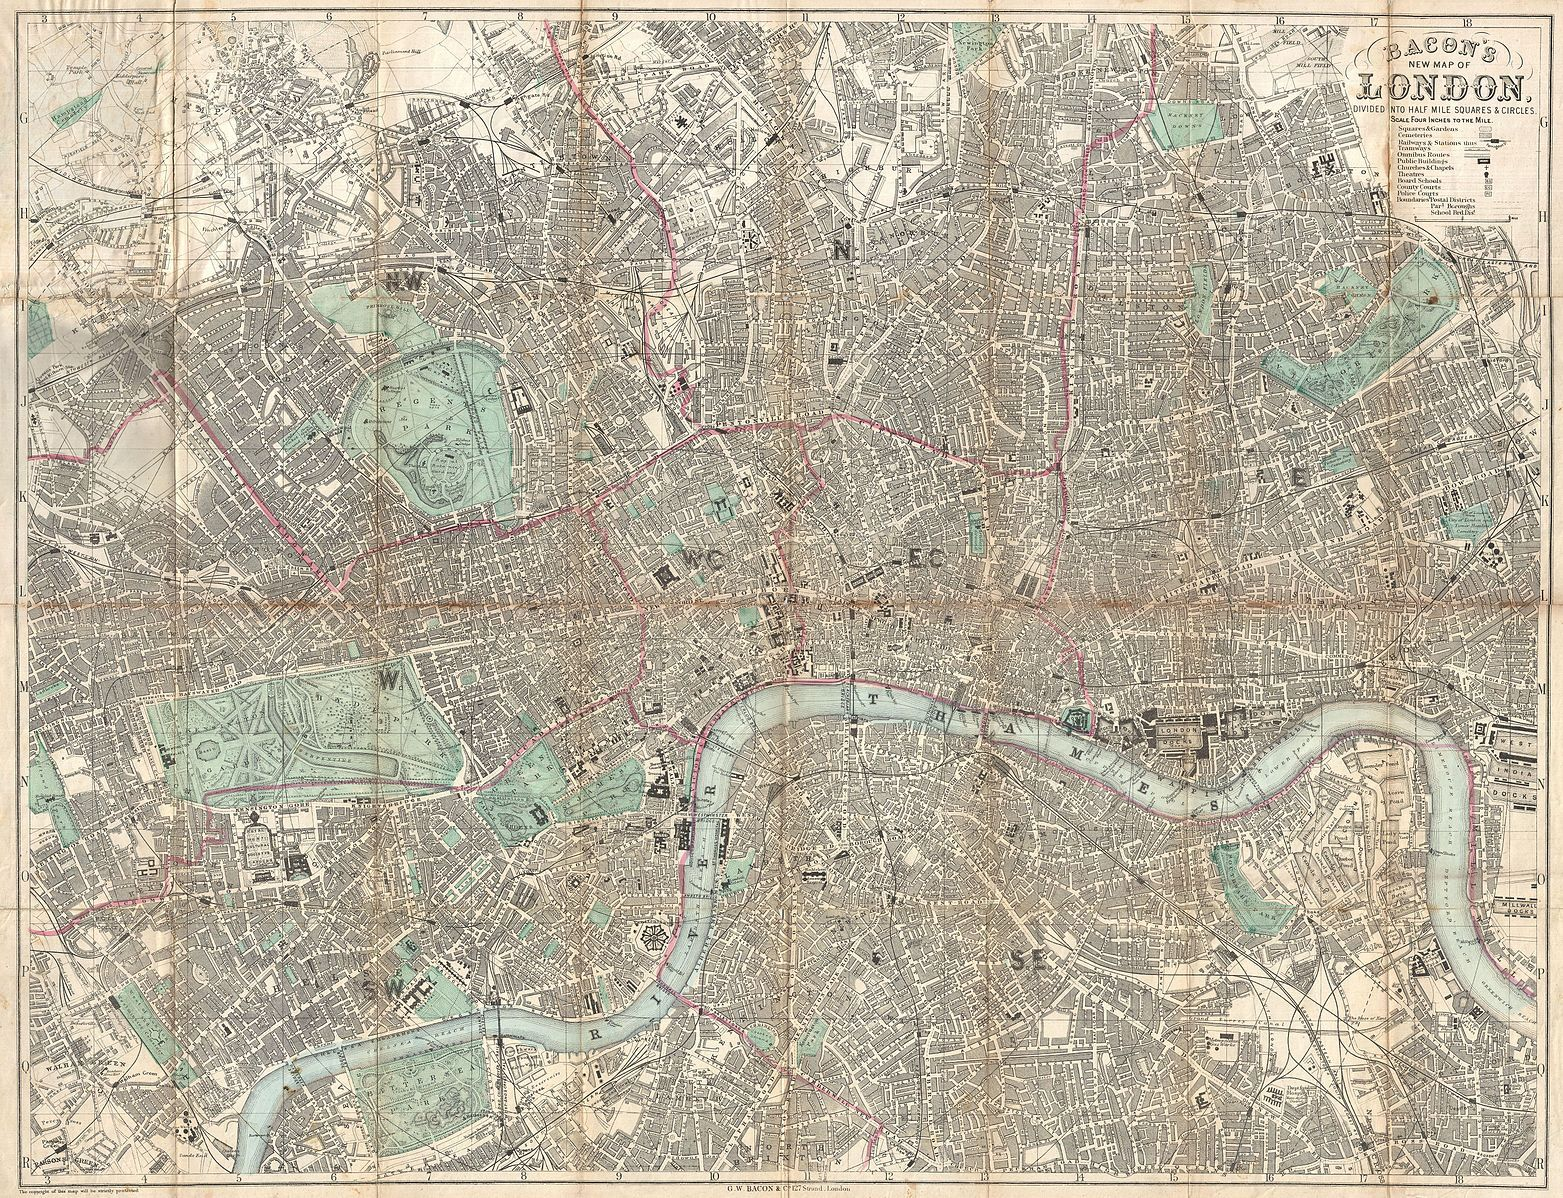 1890 Bacon Traveler s Pocket Map of London England